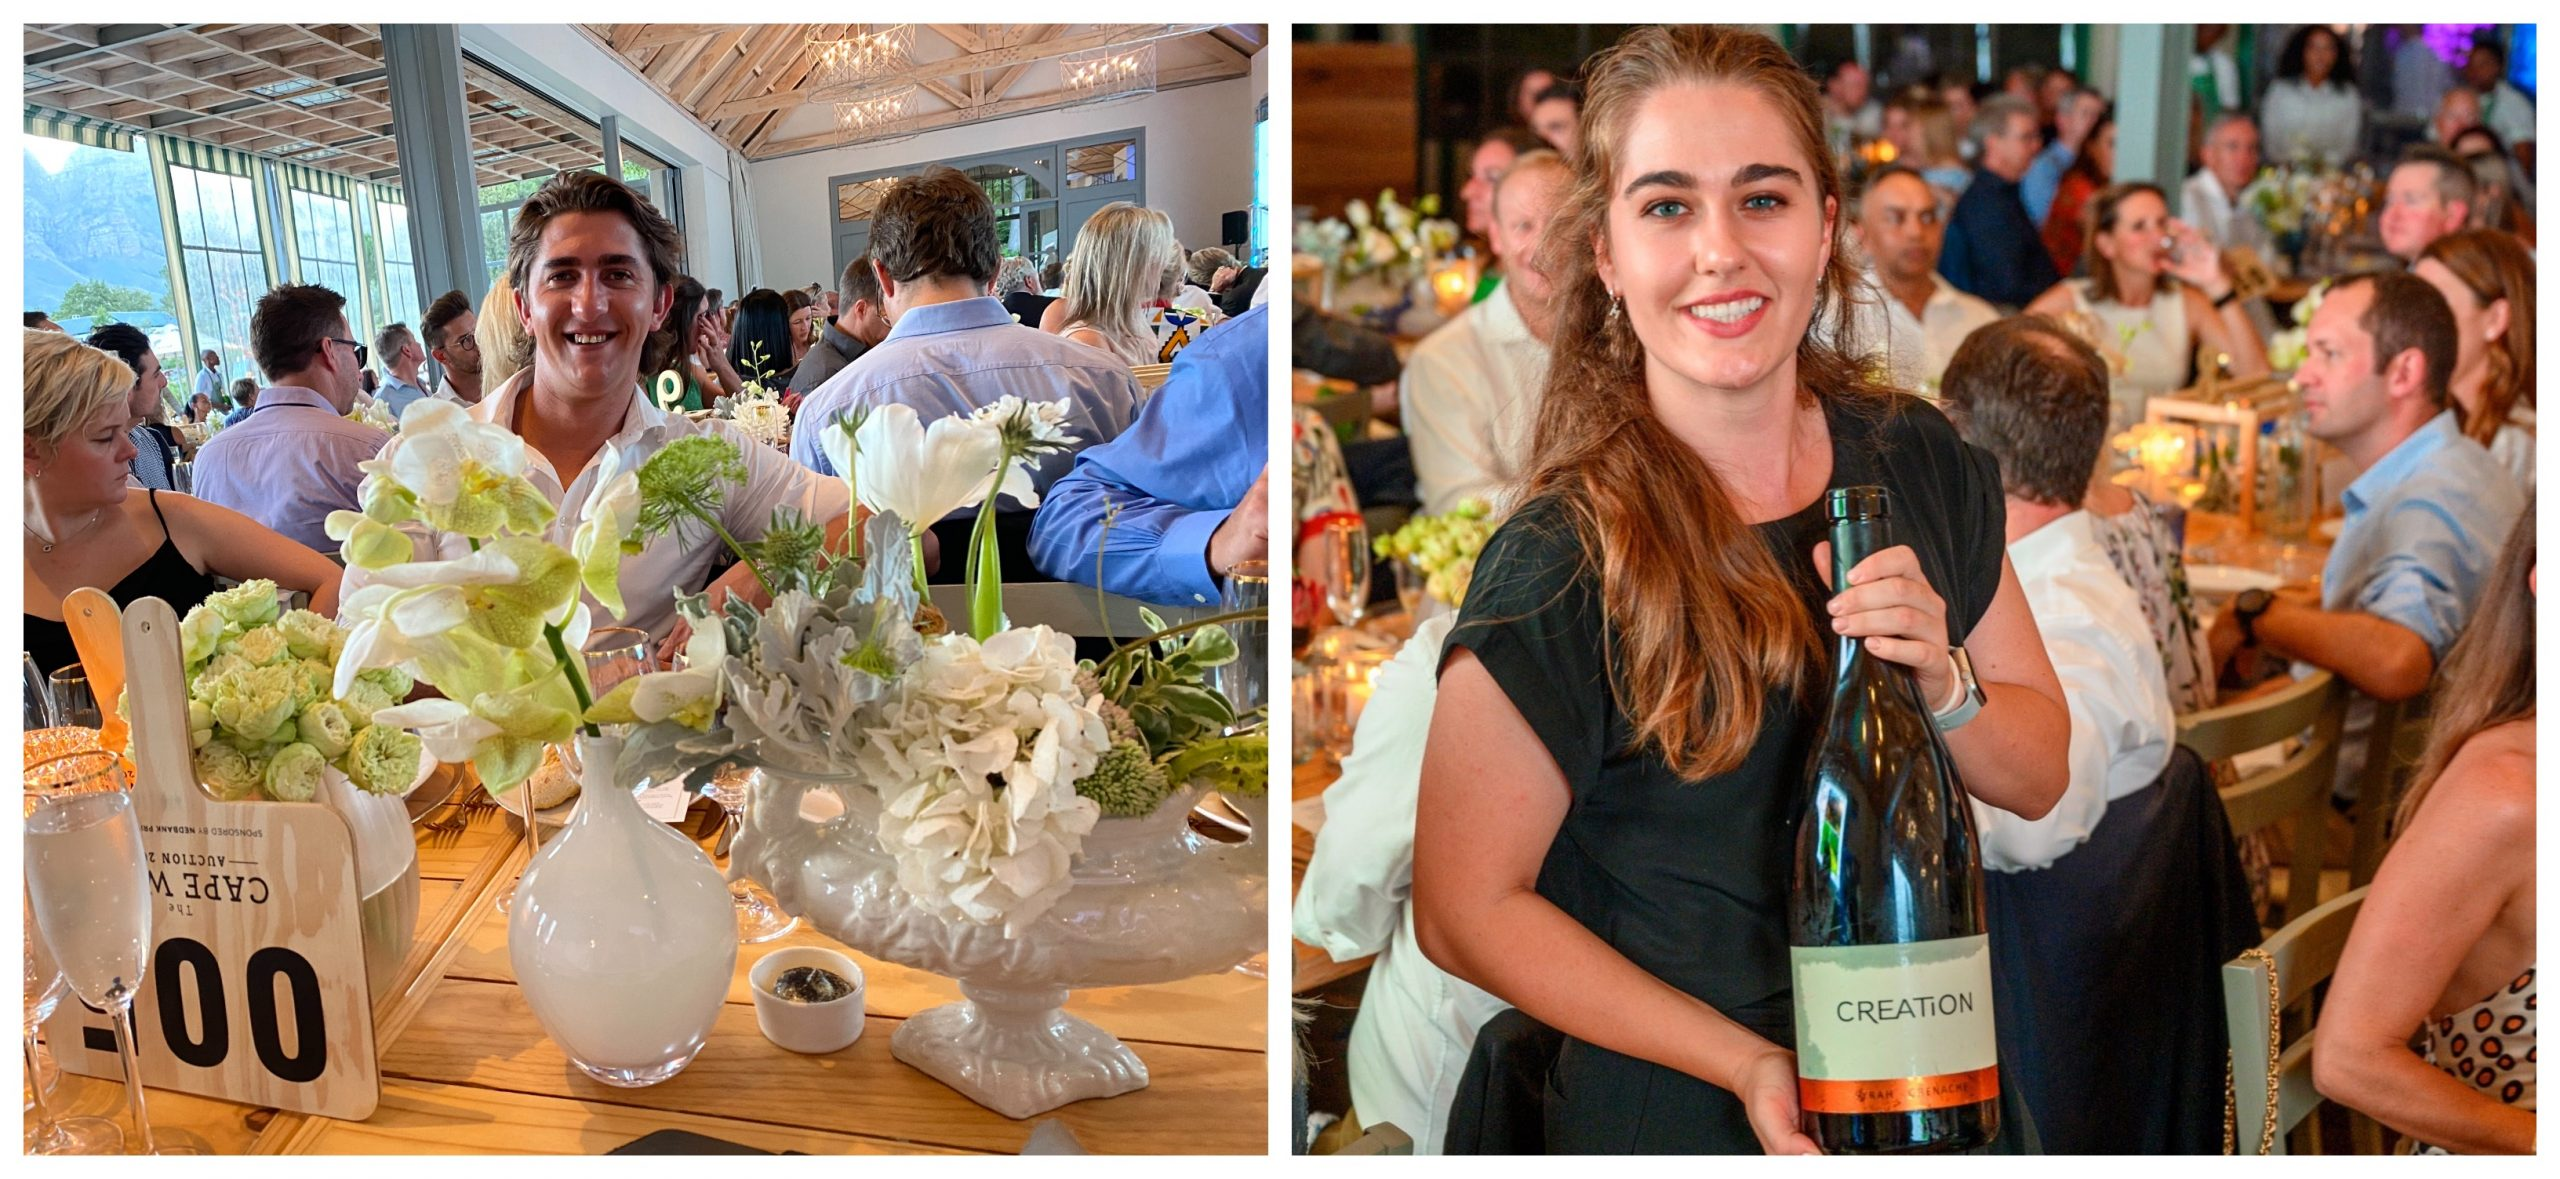 Creation Wines At Cape Wine Auction 2020 photo